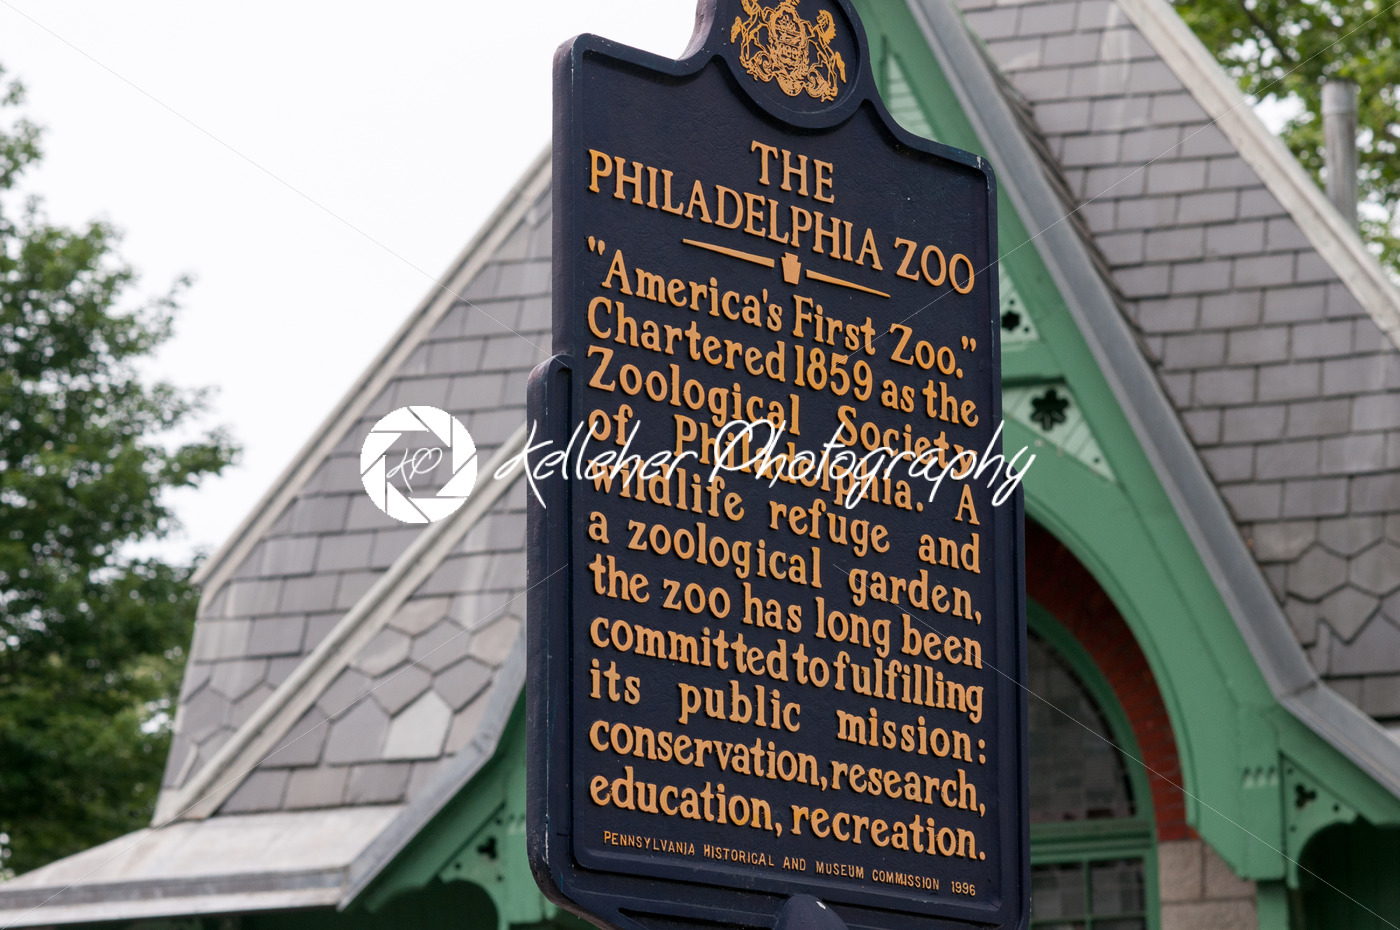 PHILADELPHIA, PA – MAY 27: Agnes Irwin Field Trip to the Philadelphia Zoo on May 27, 2014 - Kelleher Photography Store